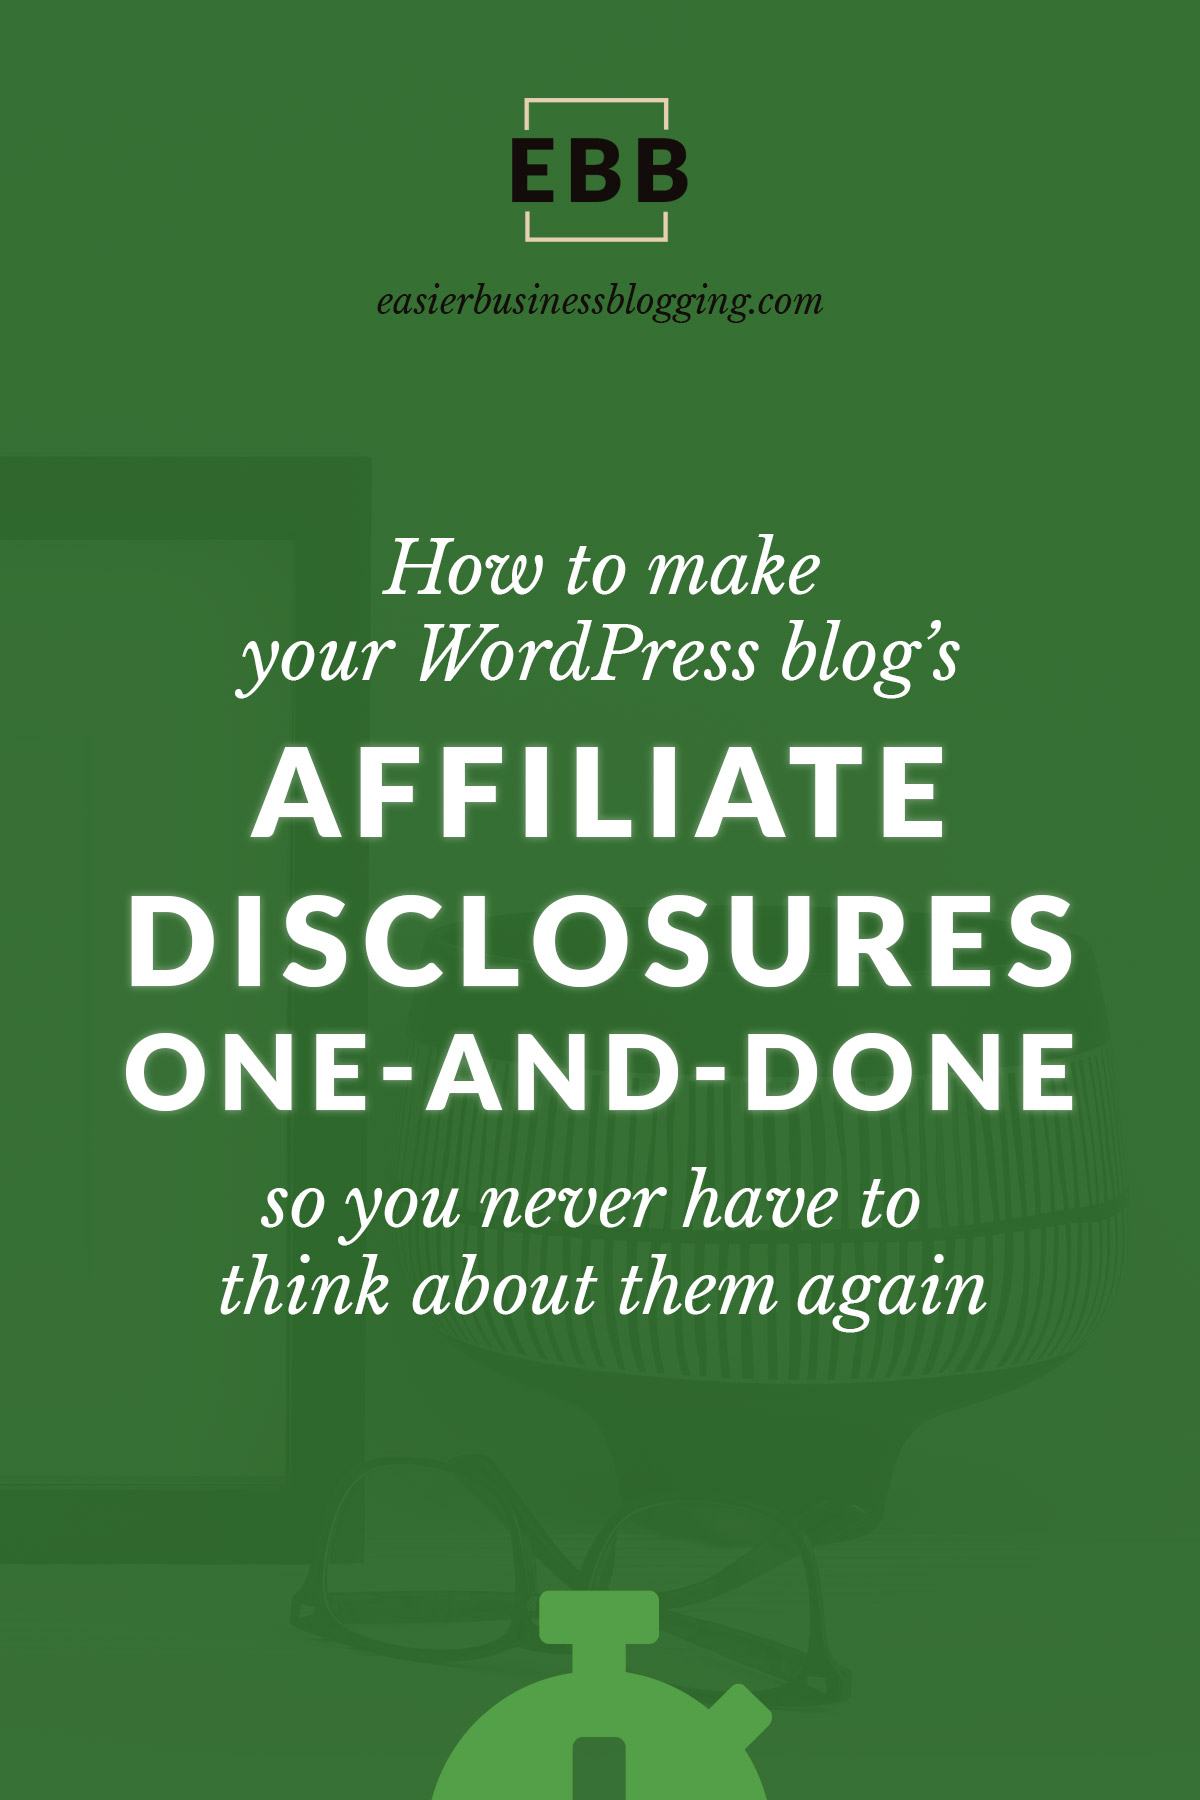 Want to simplify affiliate marketing on your WordPress blog? Learn how you can set up your blog's affiliate disclosure one time and re-use it on each post without copy and pasting. Such a time saver!